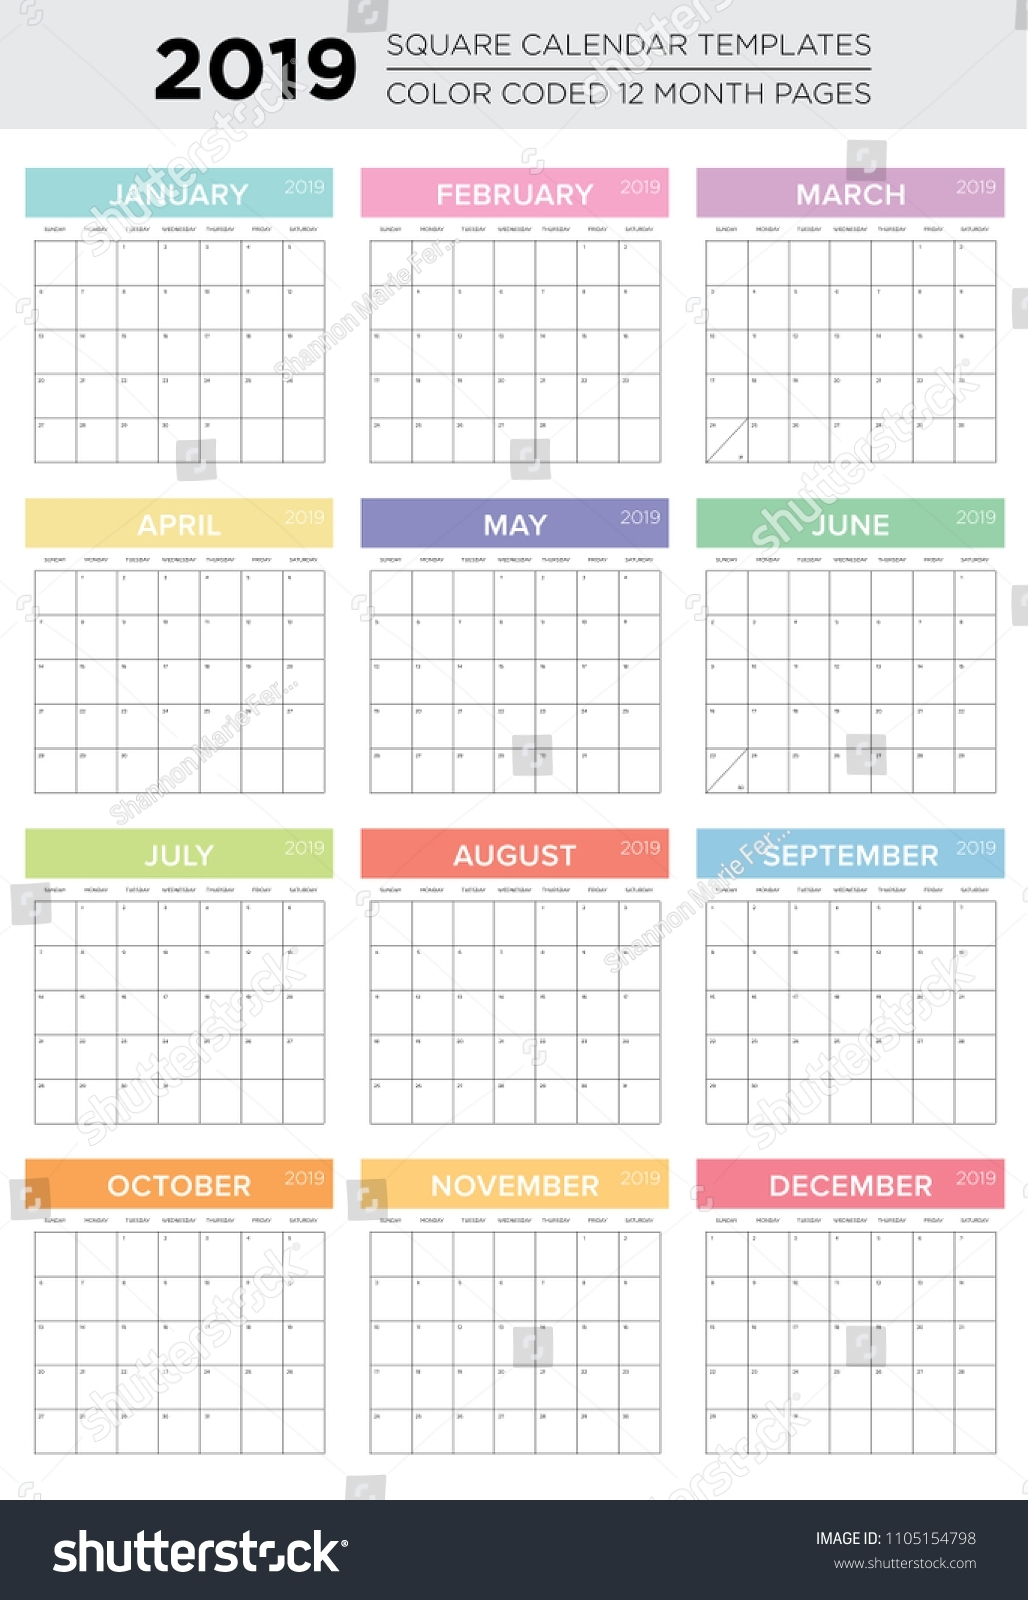 2019 12 Month Color Coded Calendar Stock Vector (Royalty